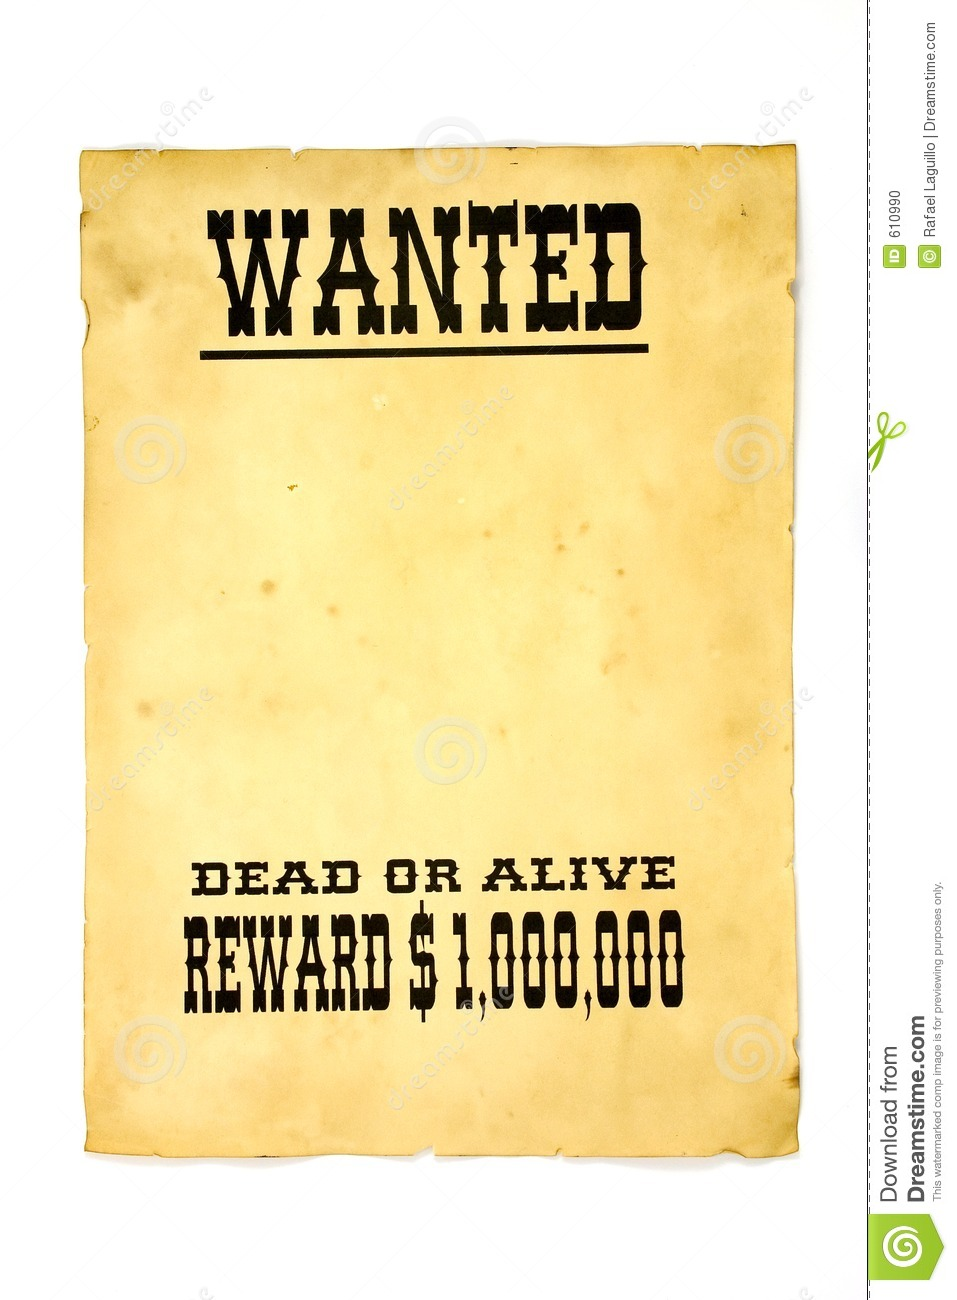 Wanted Poster Stock Photo - Image: 610990